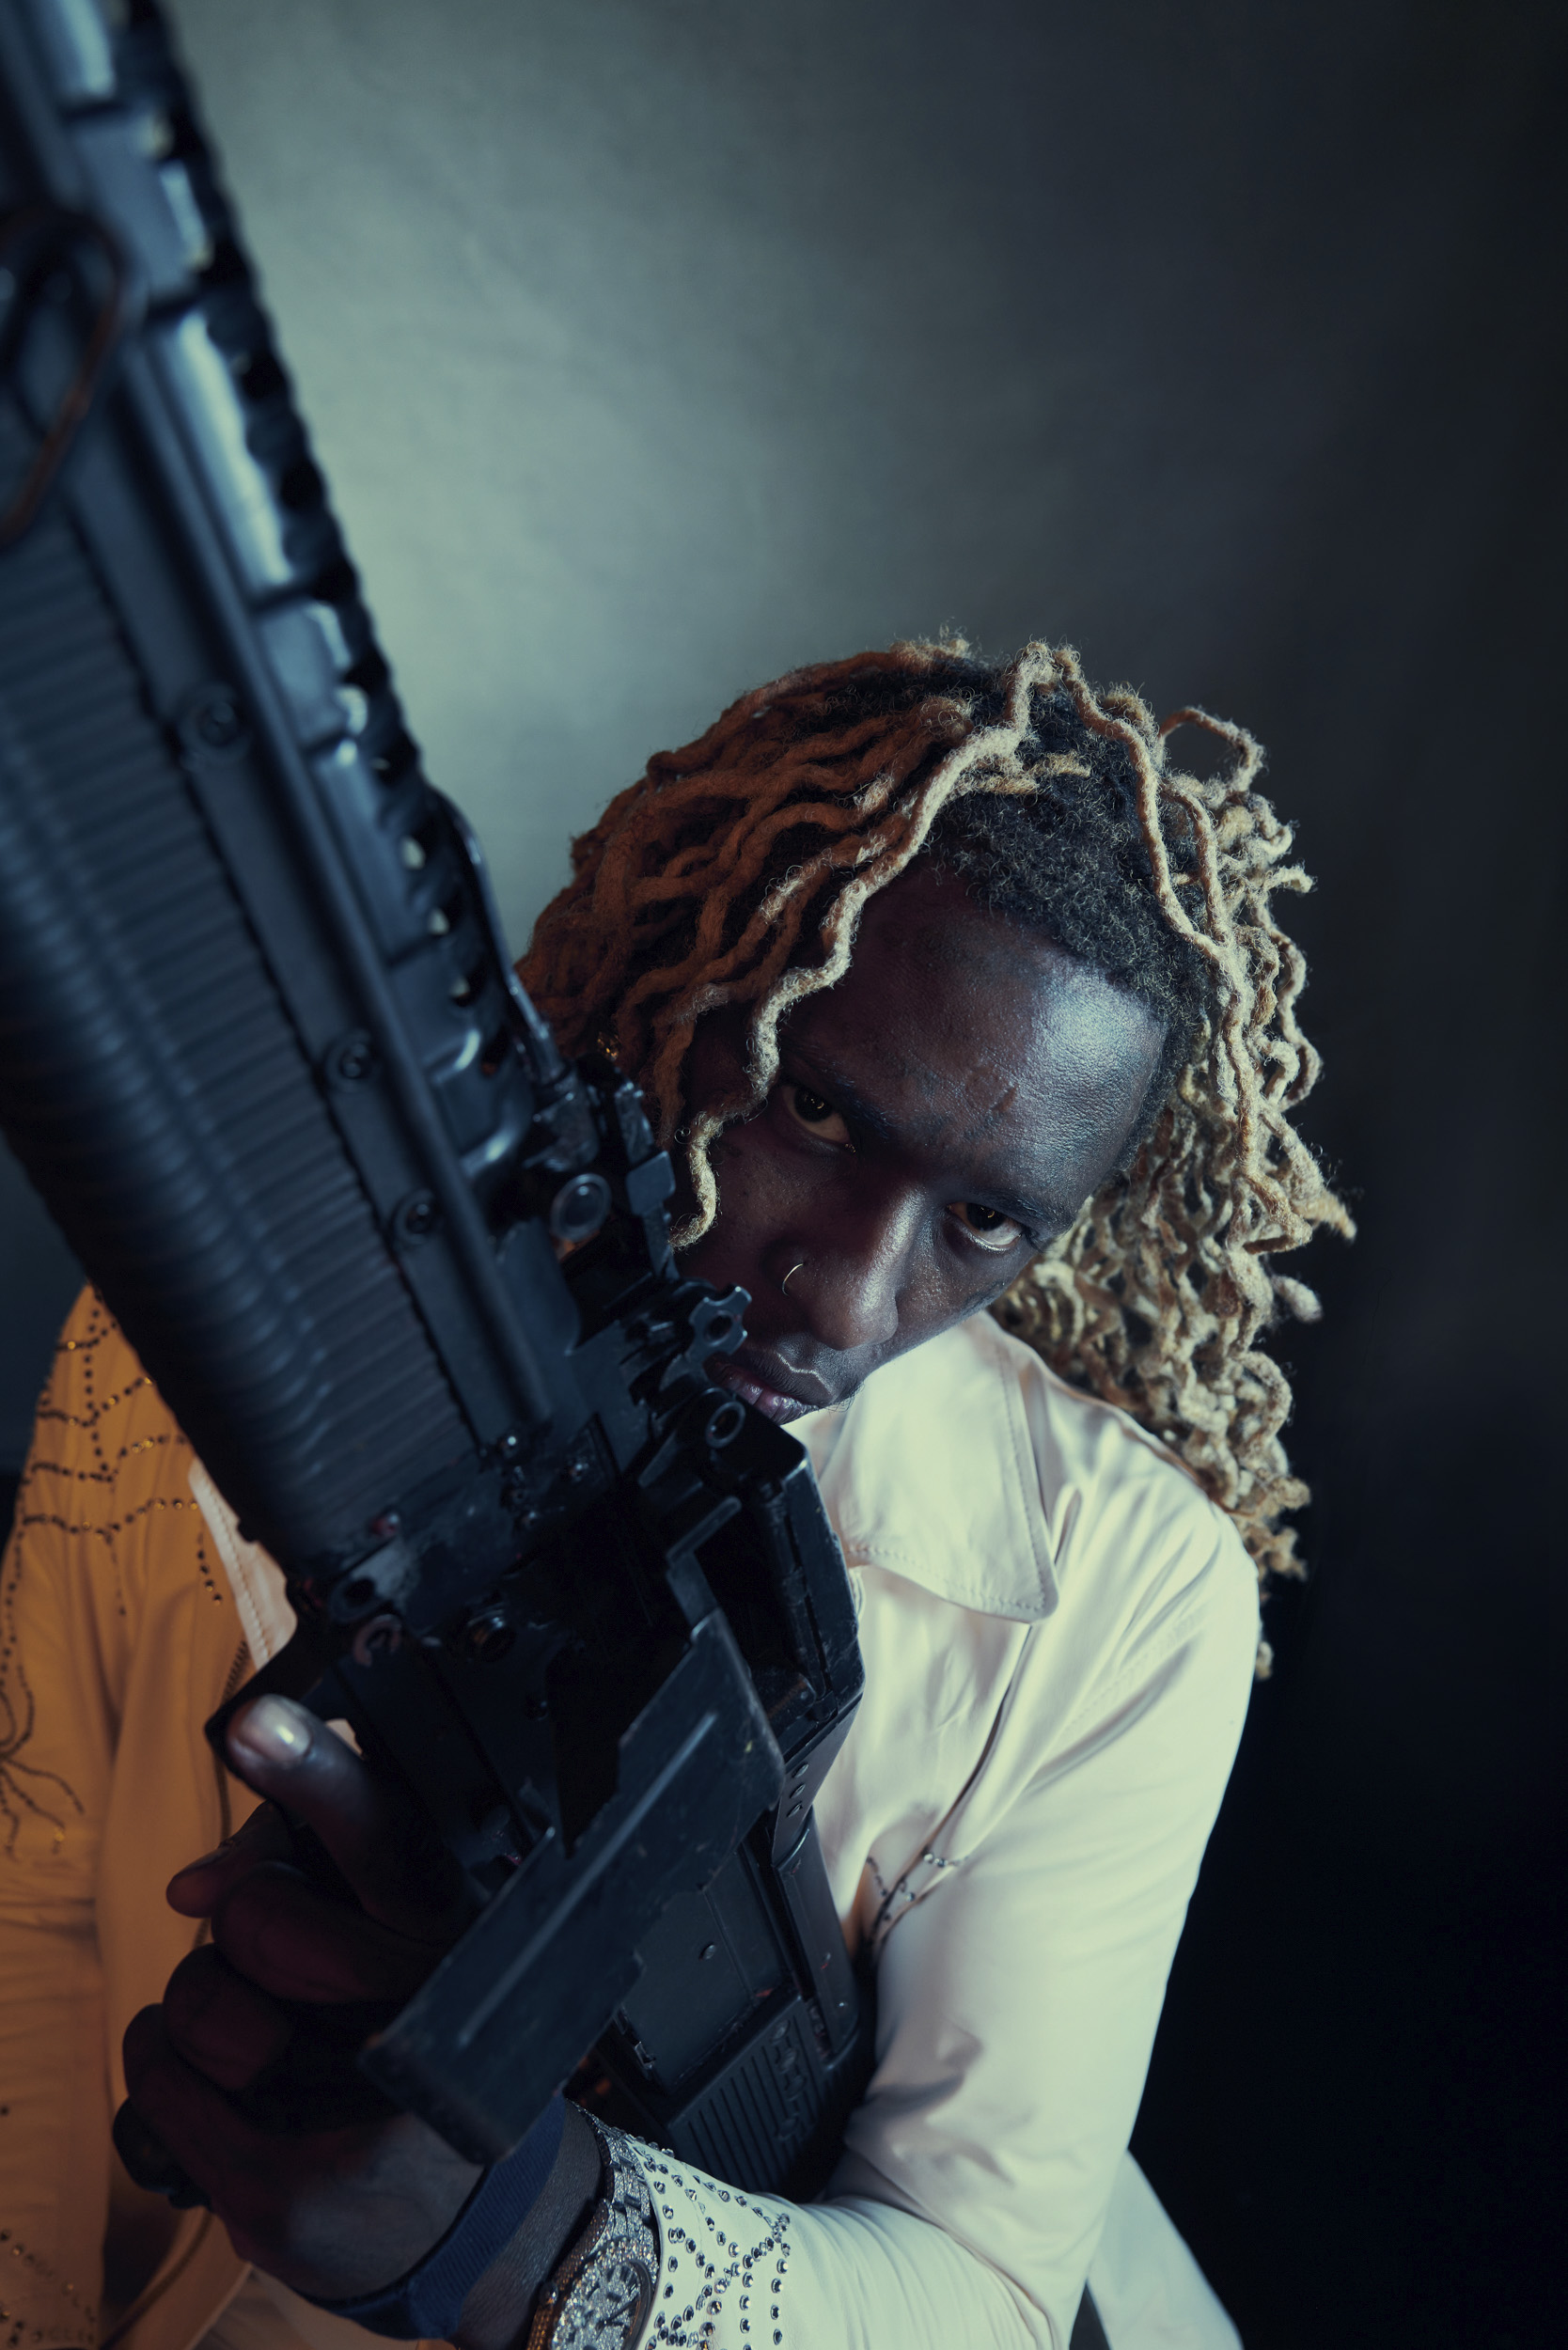 Saweetie, Young Thug & More Star In New 'Call of Duty: Warzone' Short Film